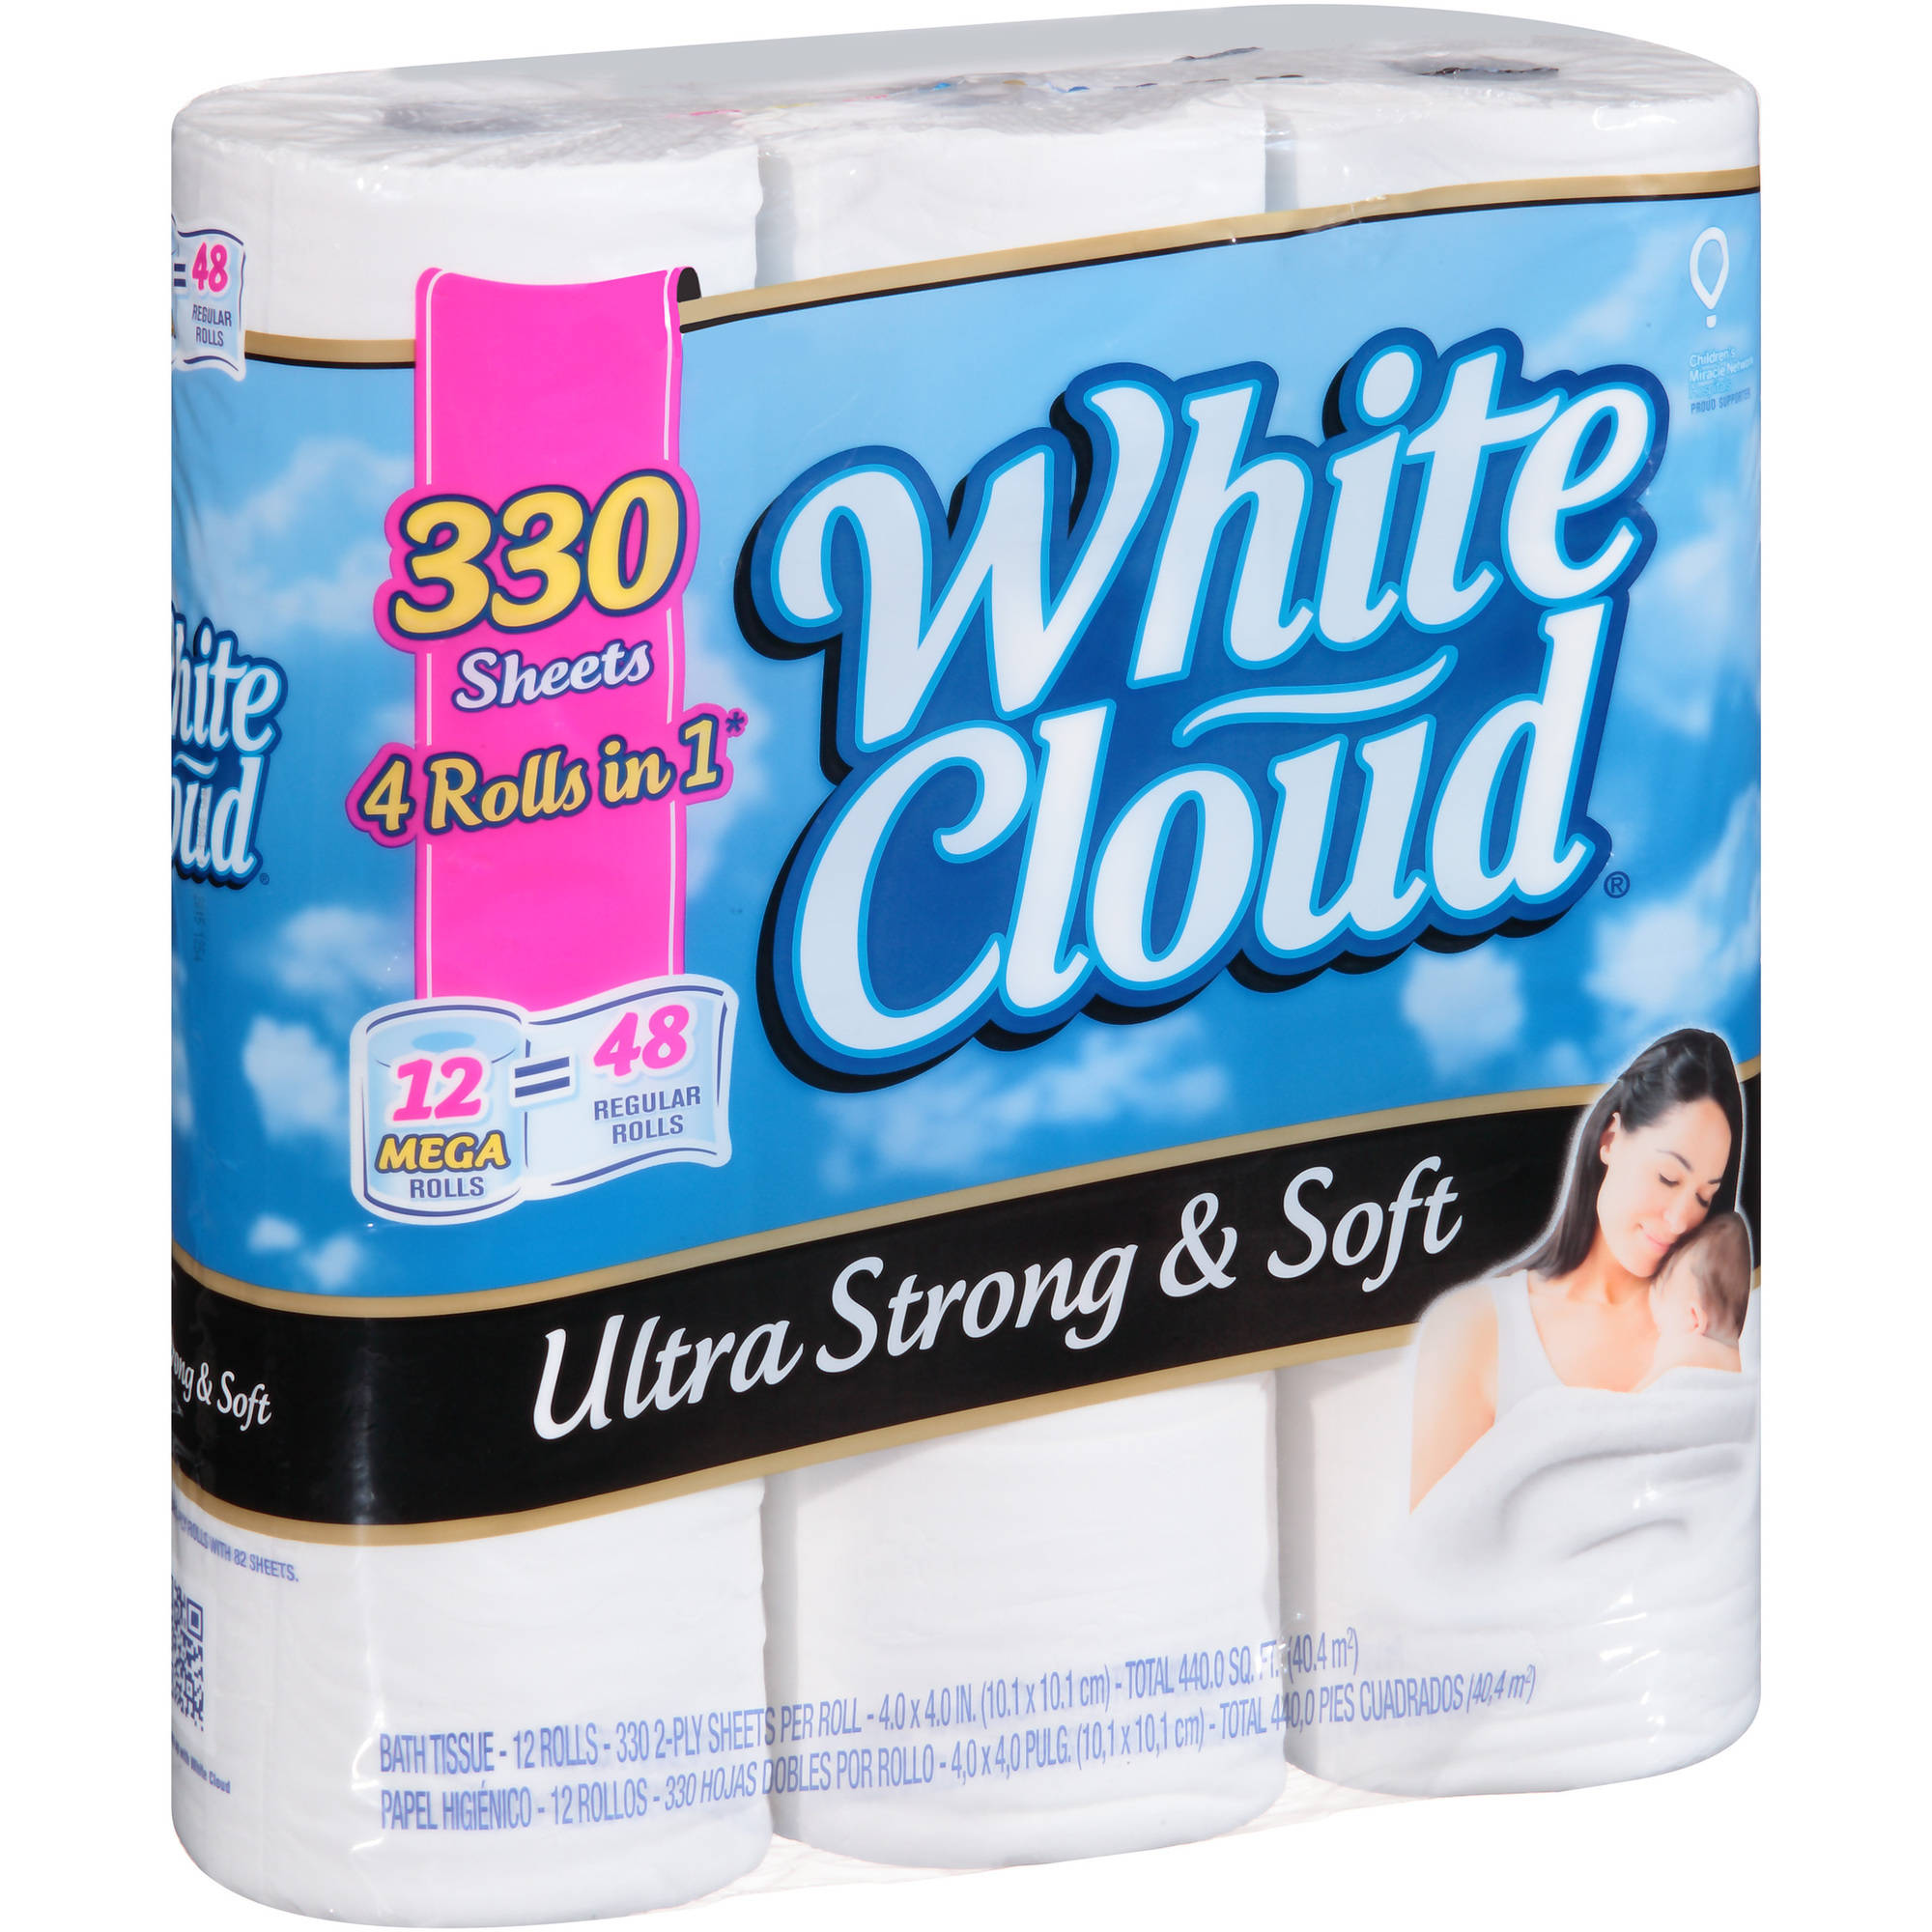 White Cloud Ultra Strong & Soft Bath Tissue Mega Rolls, 2 ply toilet paper, 330 sheets, 12 toilet paper rolls